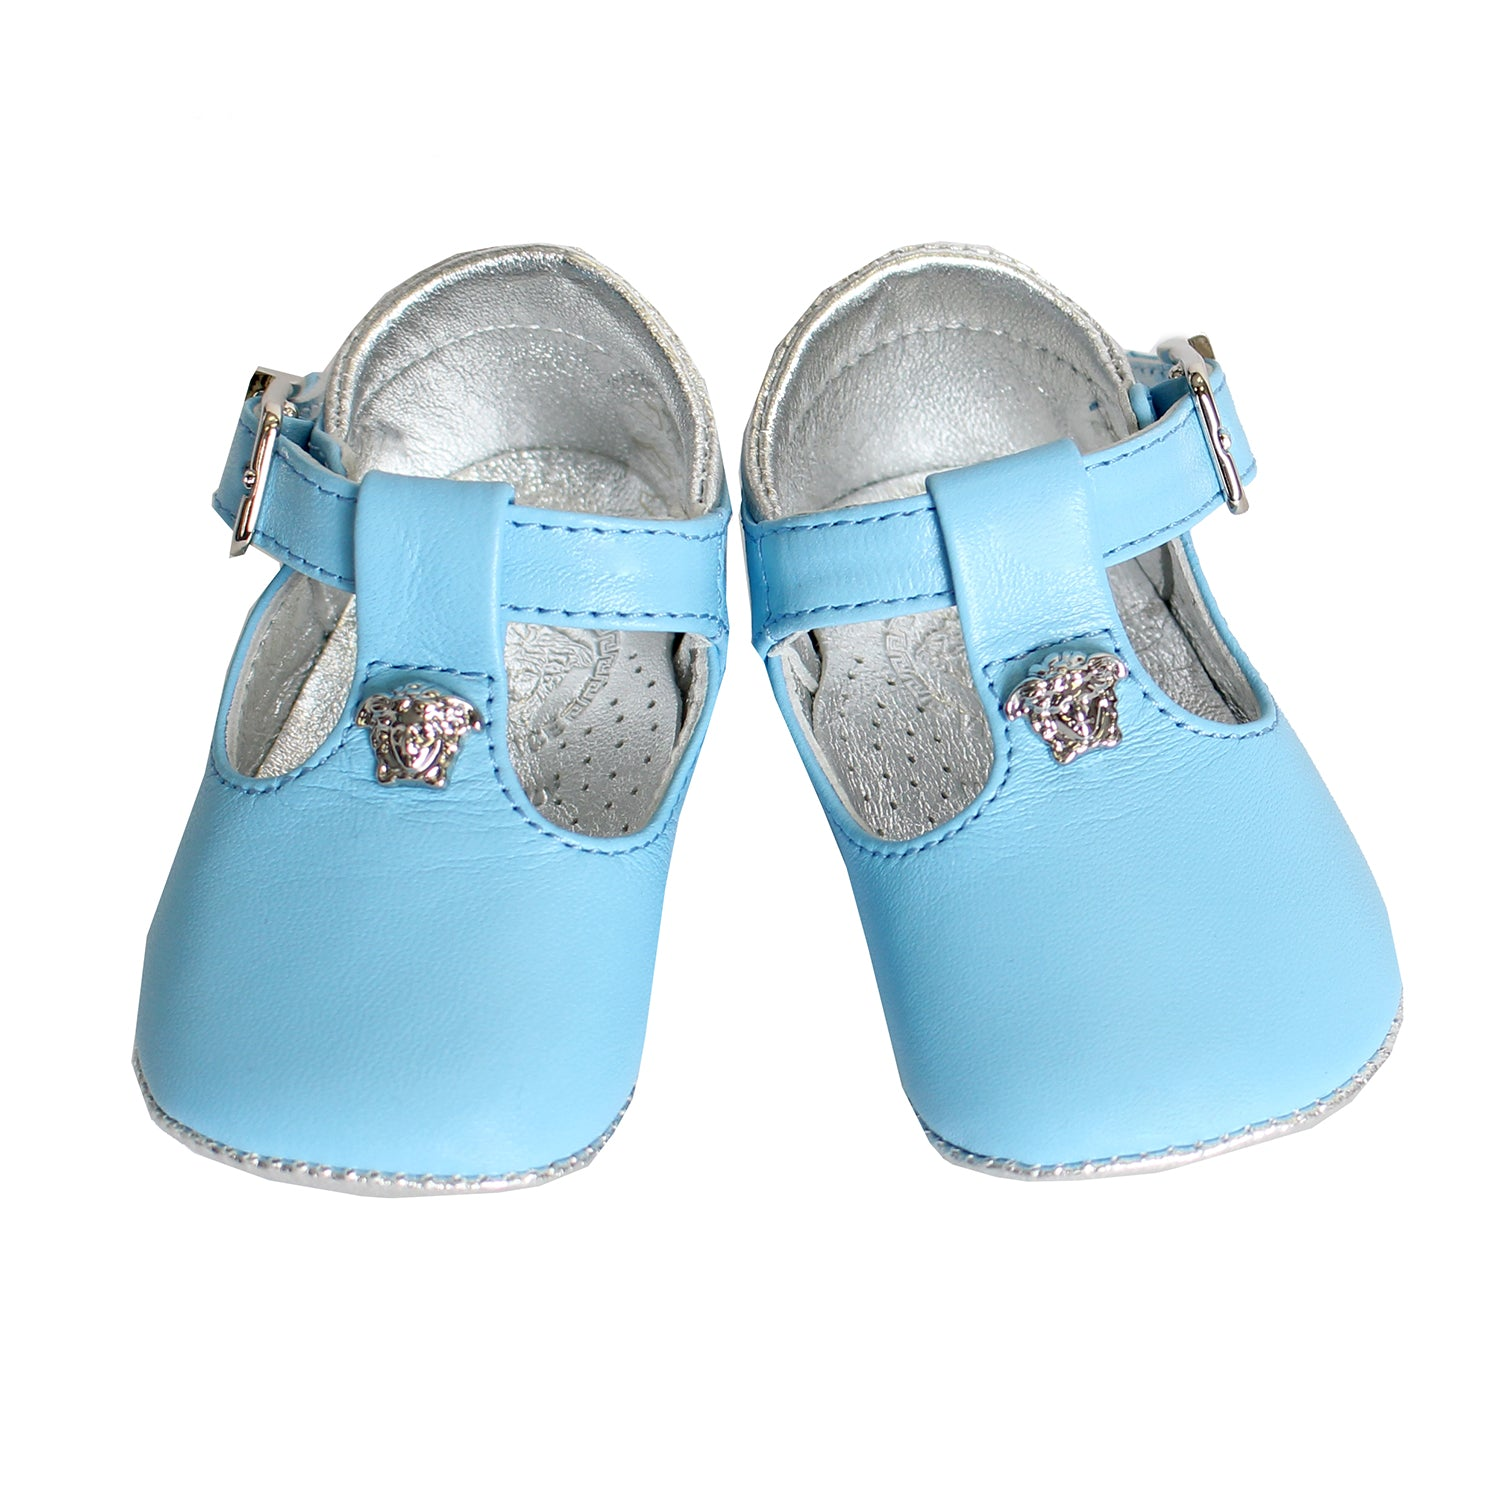 Young Versace Baby Boy Crib Shoes-Light